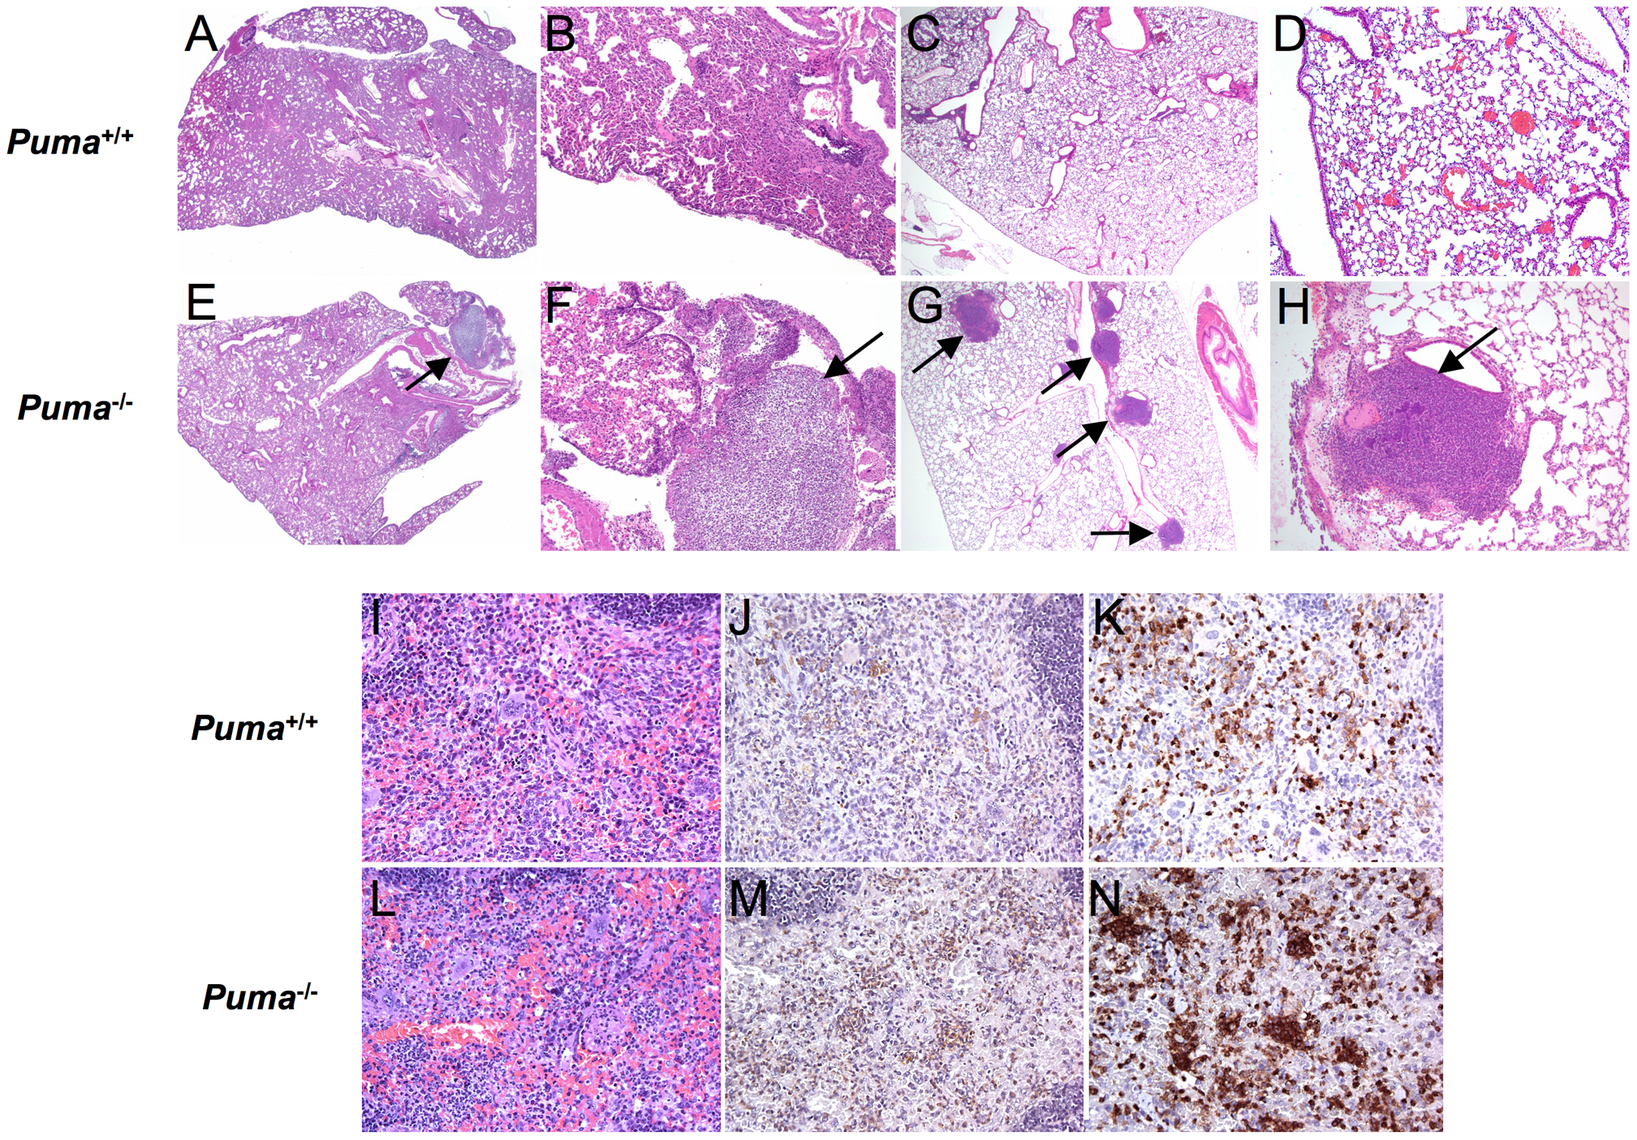 Histopathology of bacterial-infected organs.